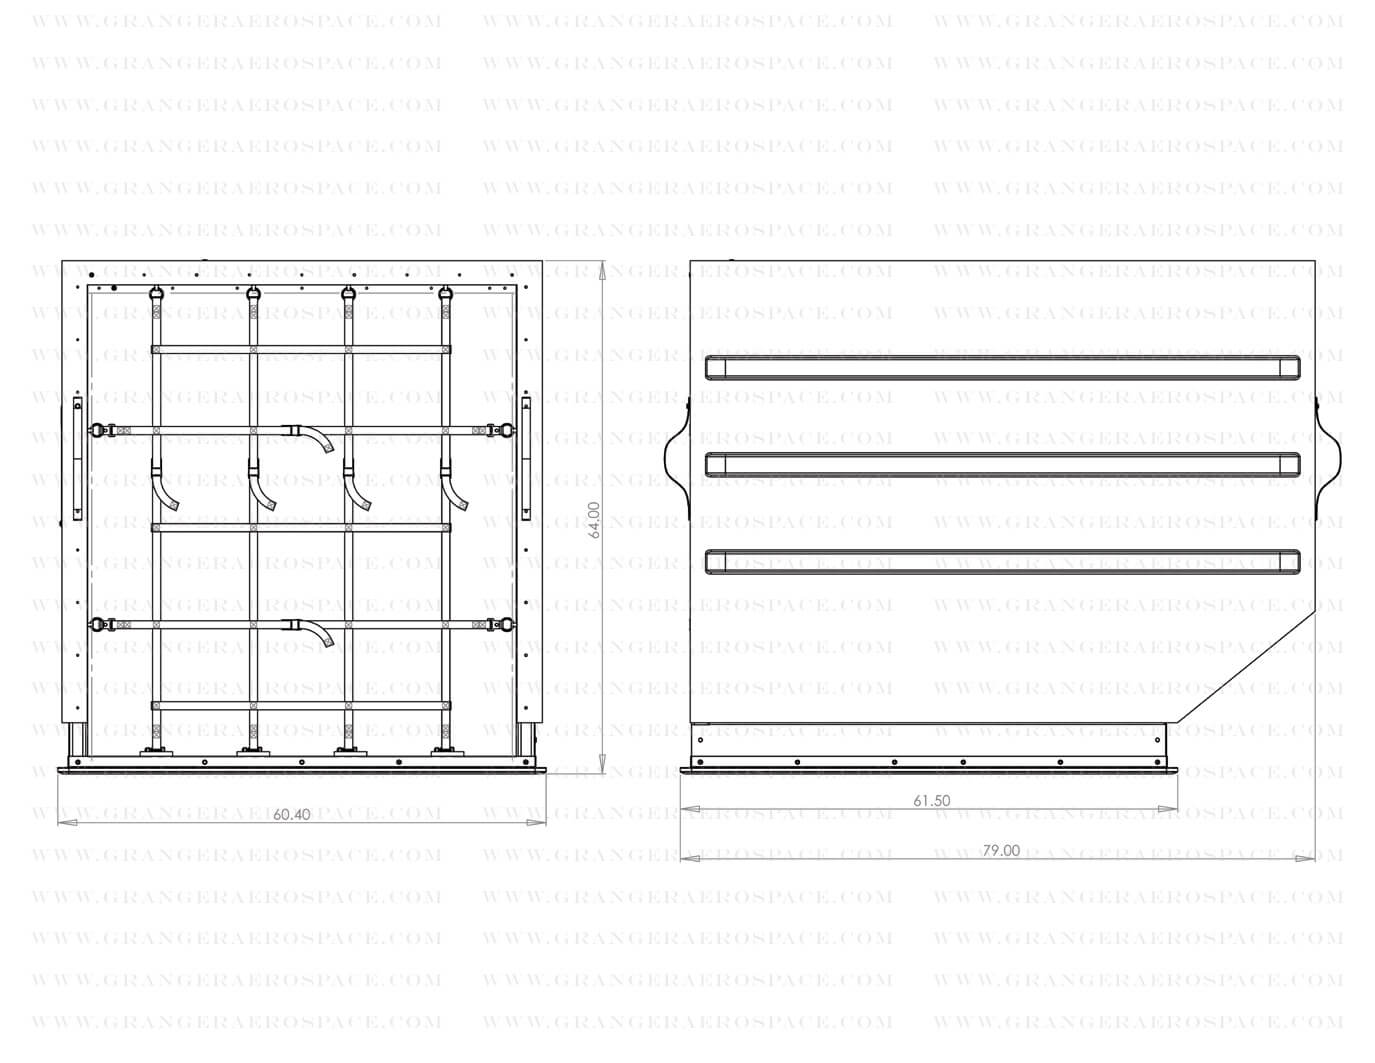 LD 3 Dimensions, LD 3 Air Cargo Container Dimensions, AKE dimensions